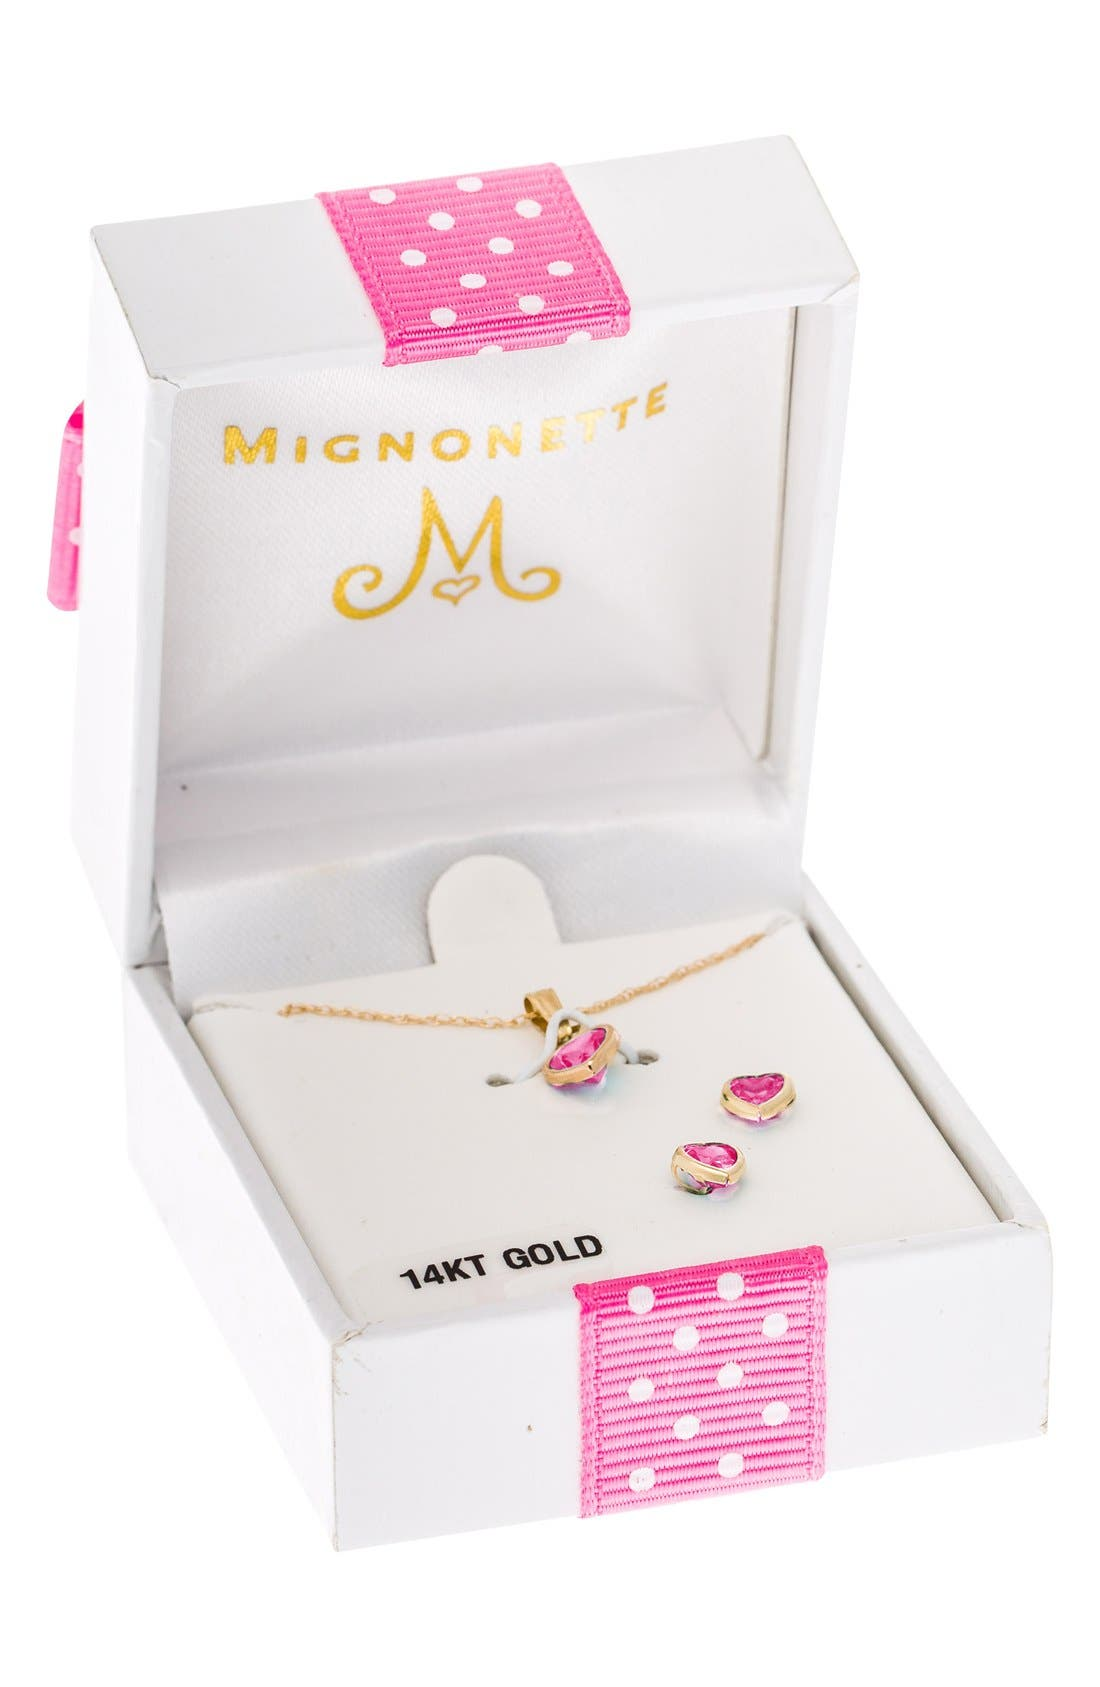 Alternate Image 3  - Mignonette 14k Gold Birthstone Necklace & Stud Earrings (Baby Girls)